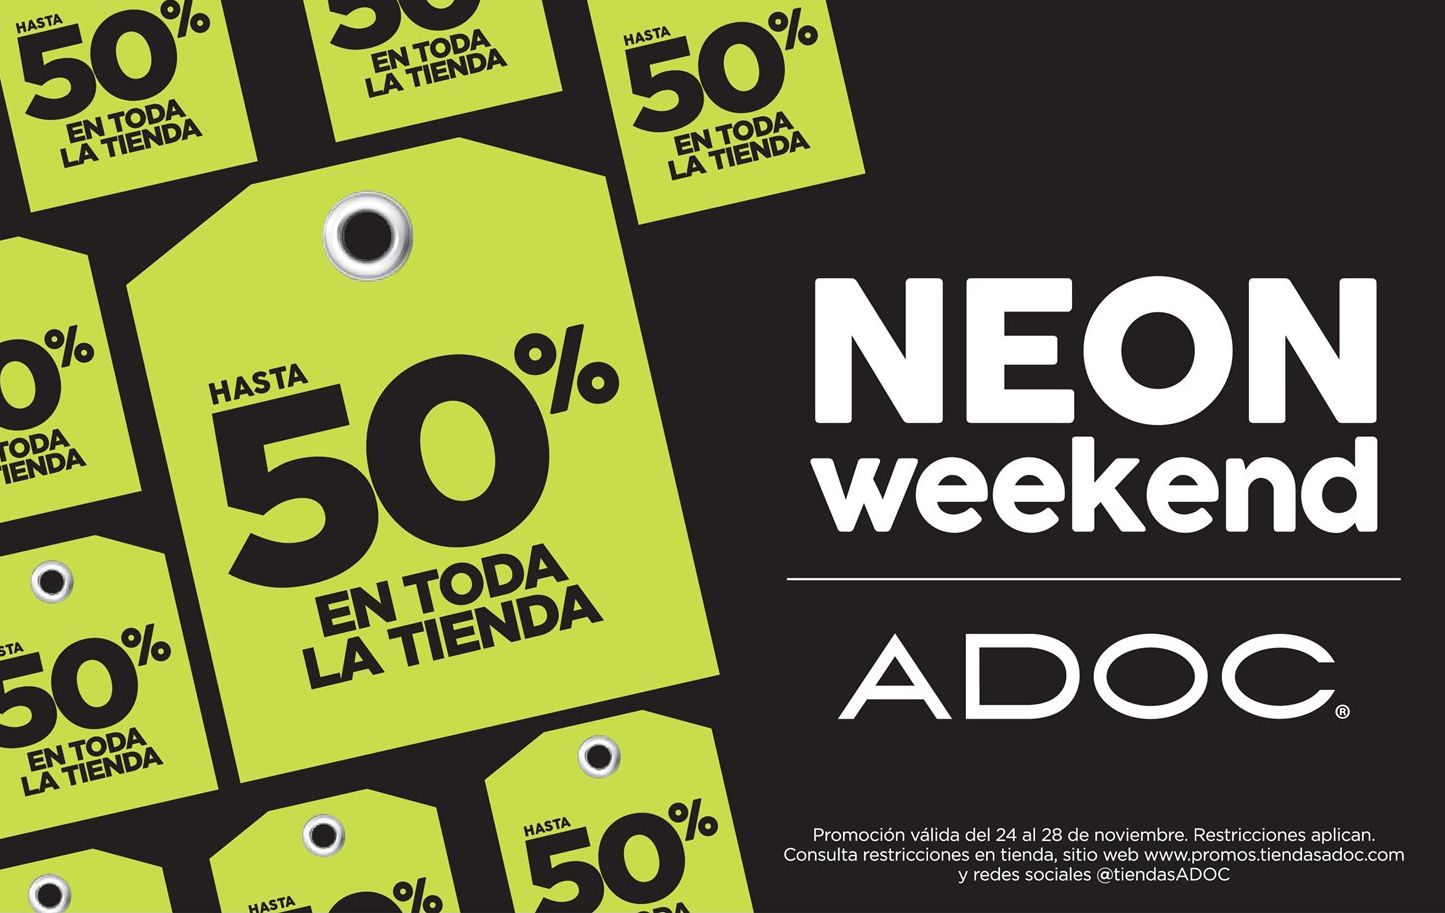 black-friday-adoc-shoes-descuentos-neon